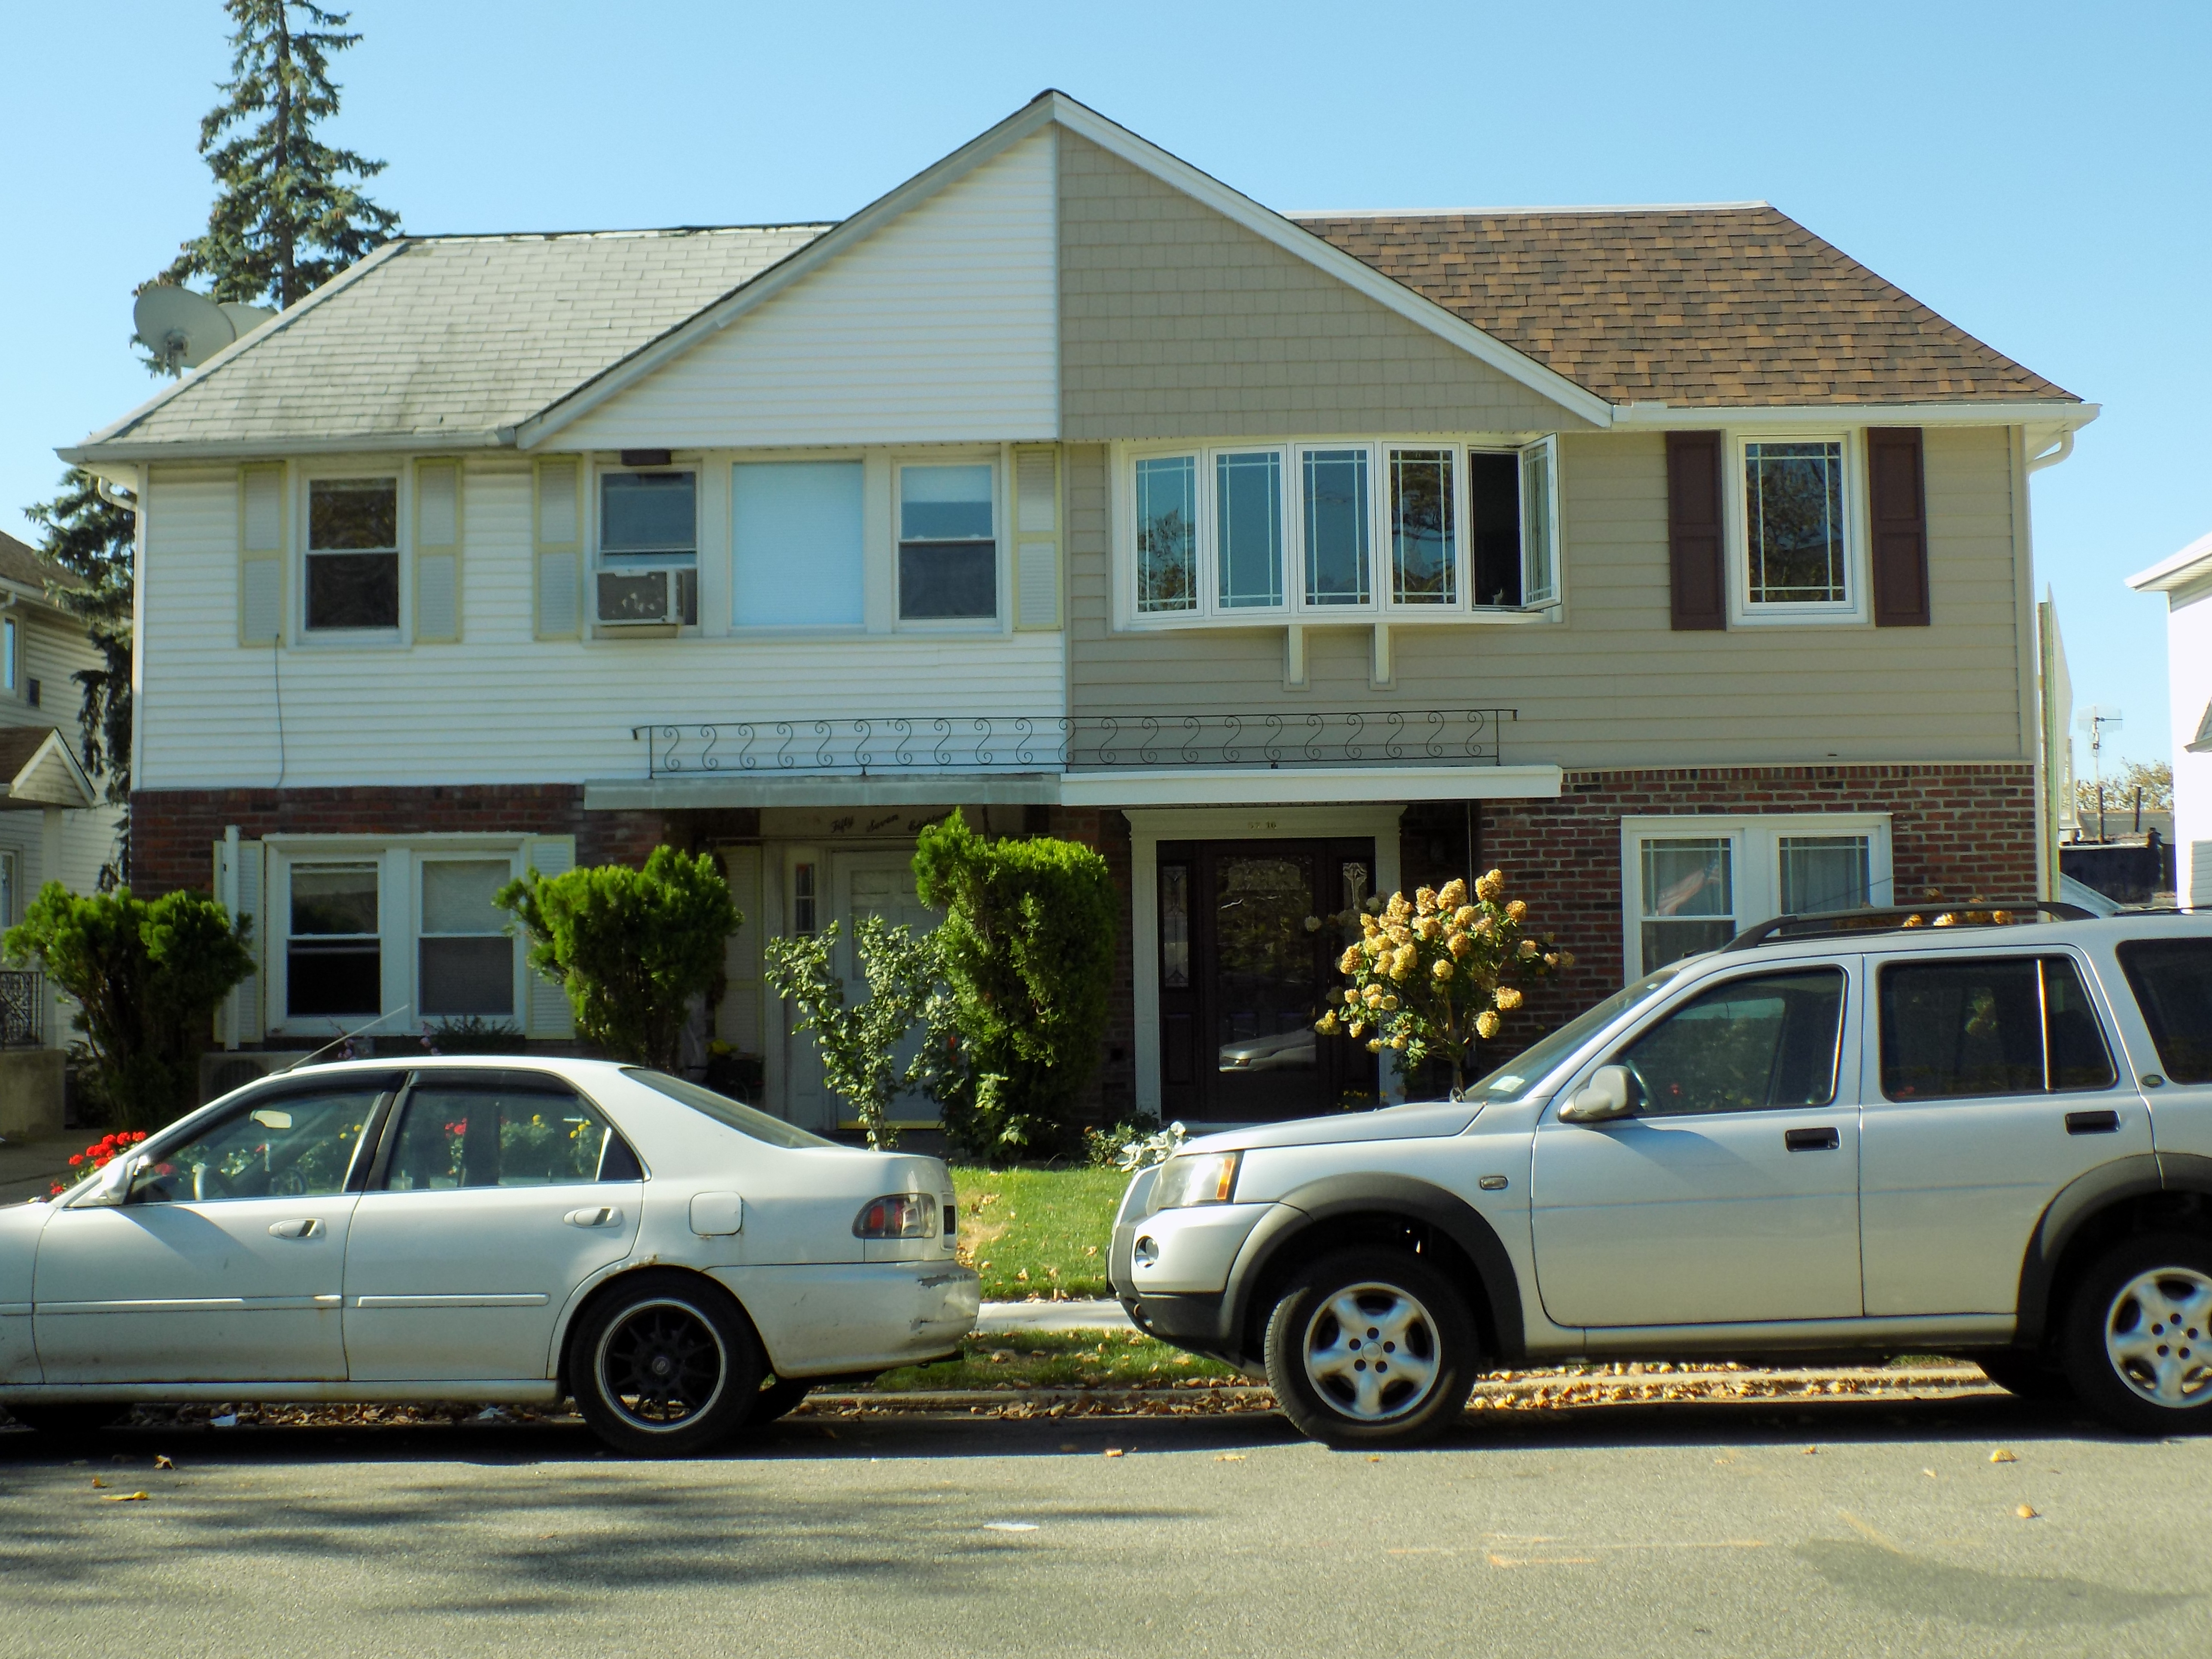 Major Homes Roof Siding And Window Replacement In